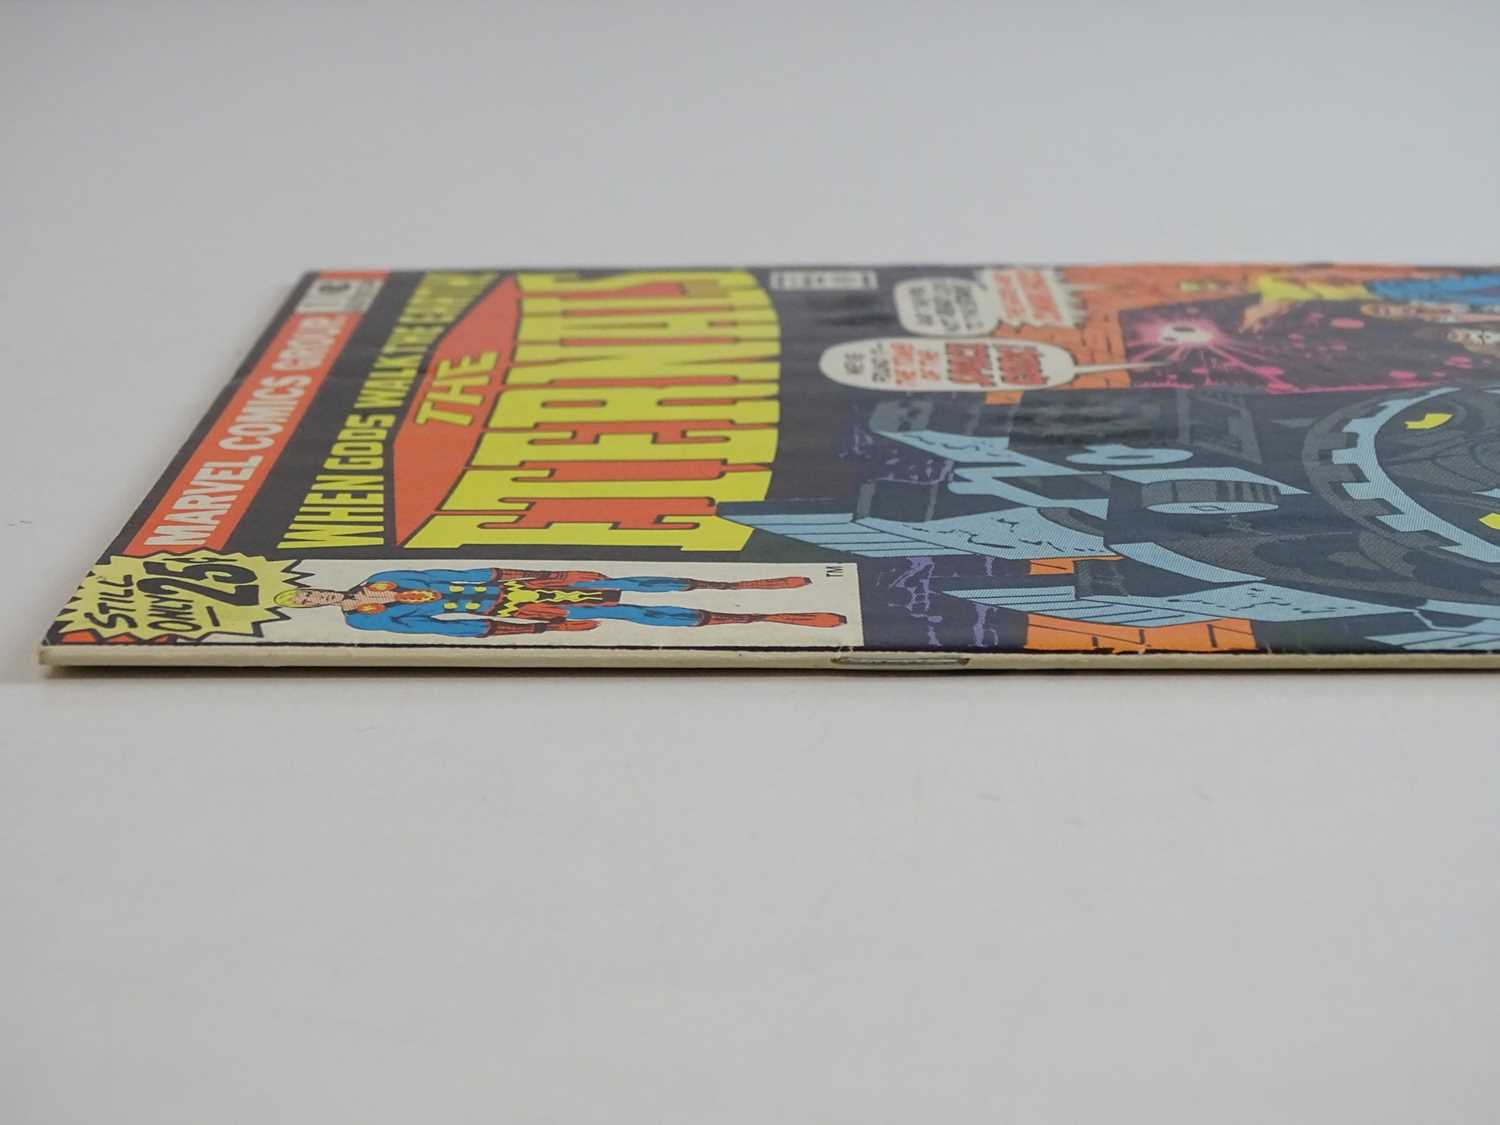 ETERNALS #1 - (1976 - MARVEL) - HOT Key book + Origin and First appearances of the Eternals (Ikaris, - Image 8 of 9